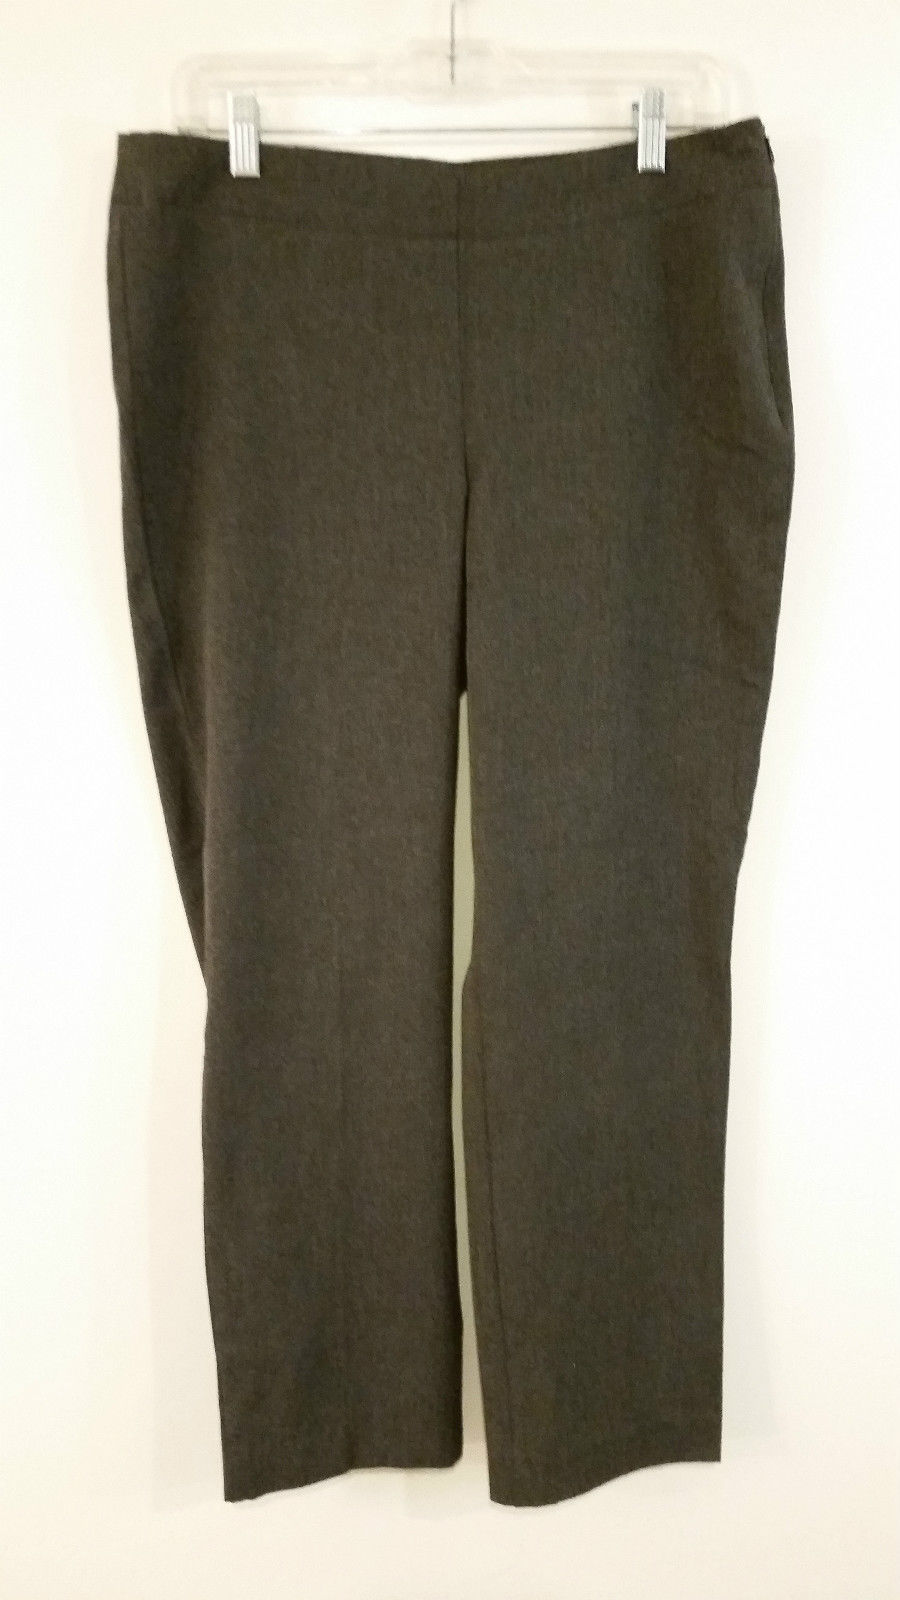 Dark Gray Stretchy Pants Talbots Heritage Petites Side Zipper Size 12P